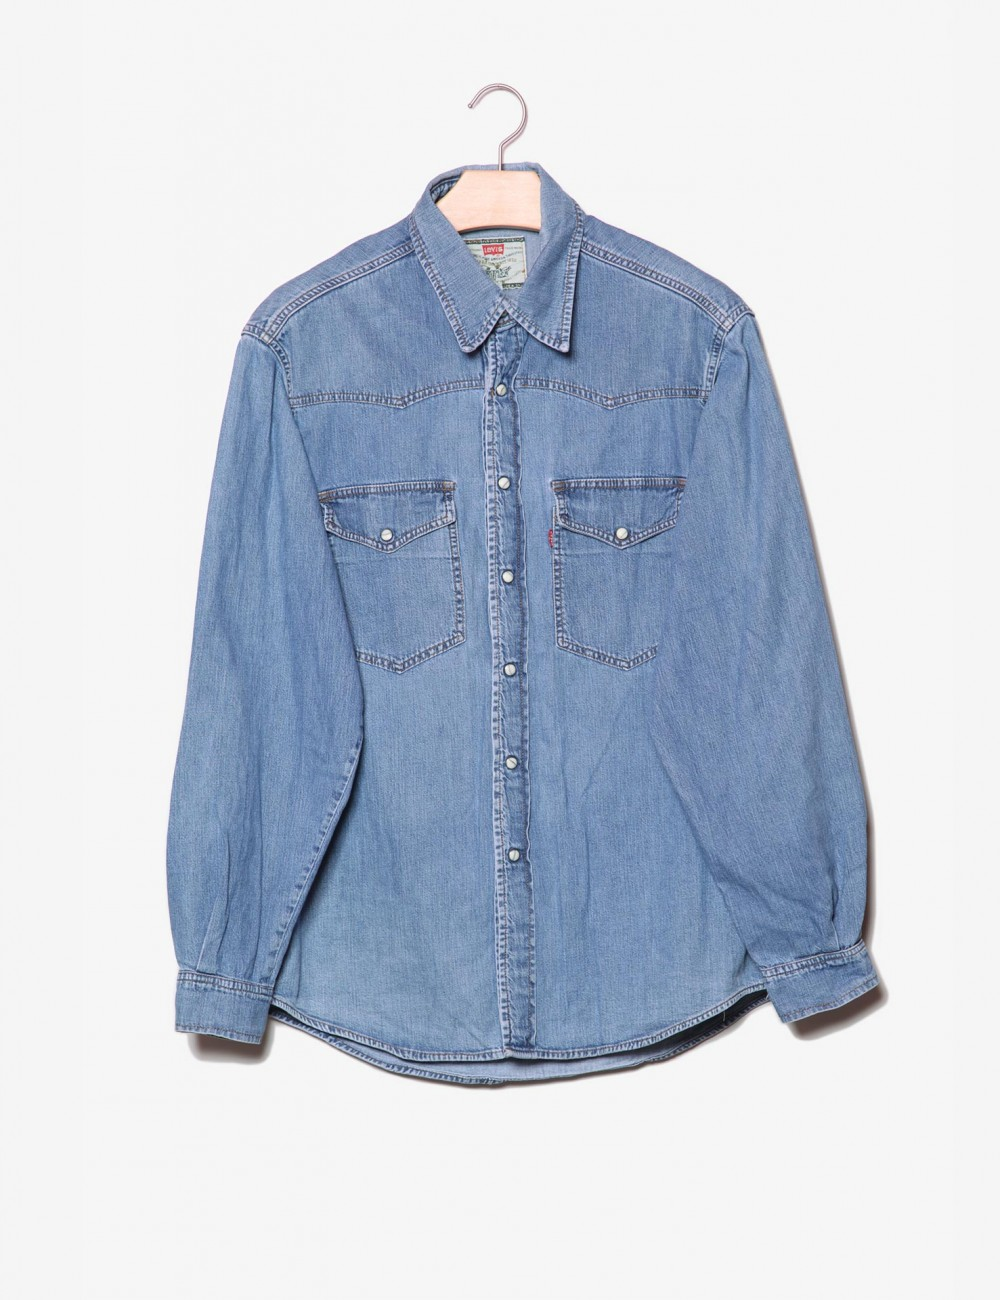 Camicia denim con bottoni in madreperla-Levi's-frontale.jpg